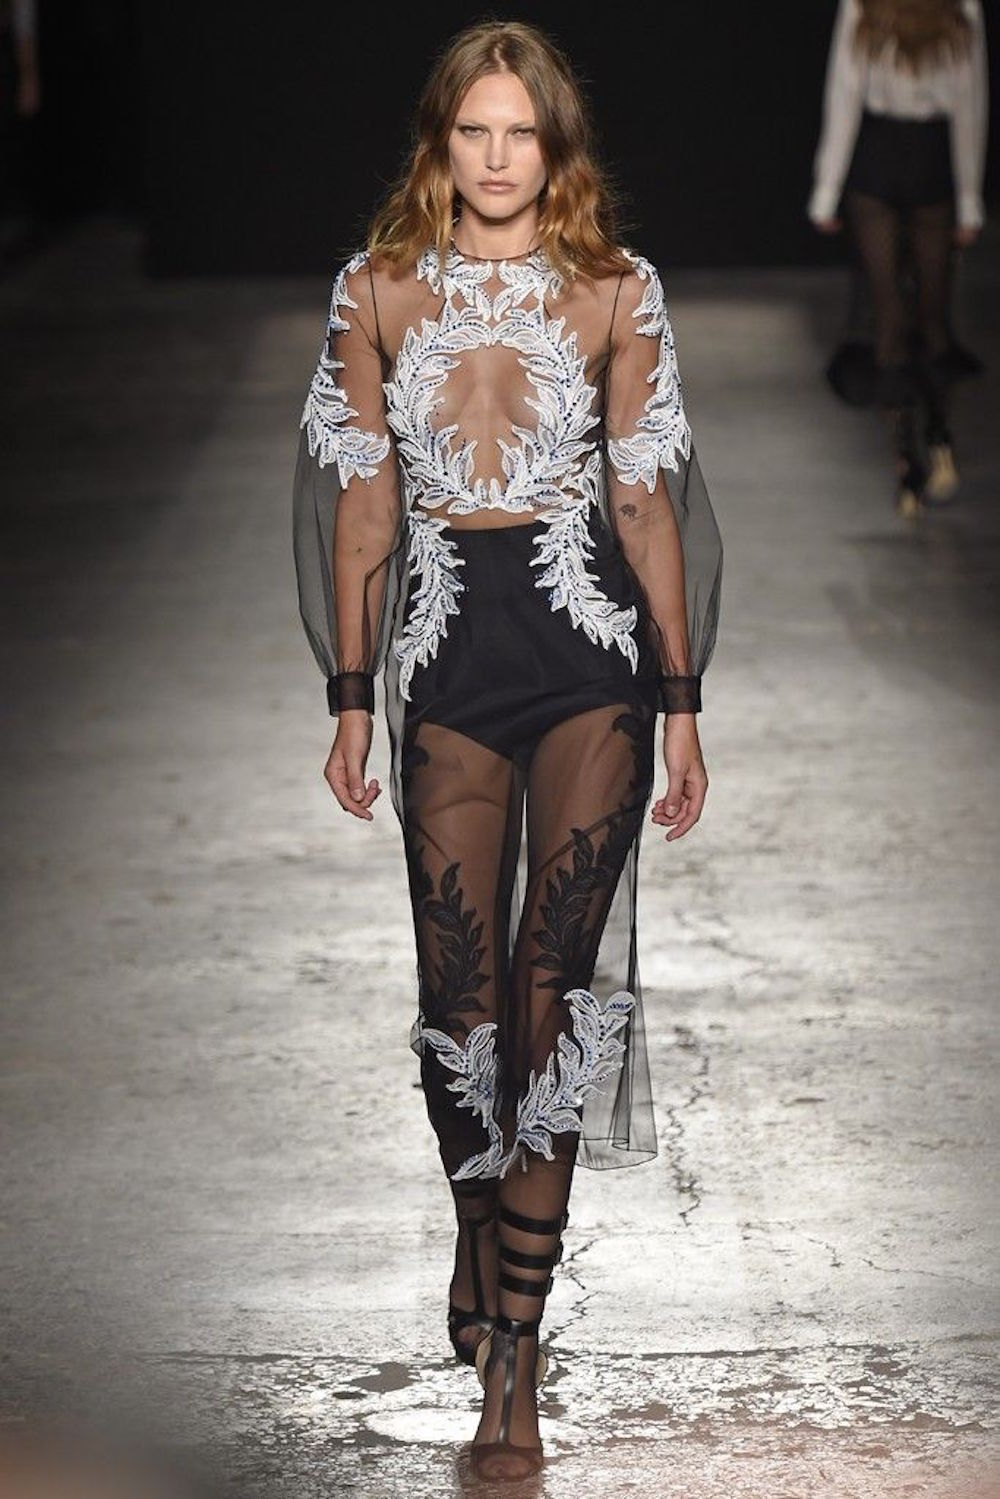 20-francesco-scognamiglio-rtw-spring-2015-runway-cat-mcneil-oracle-fox